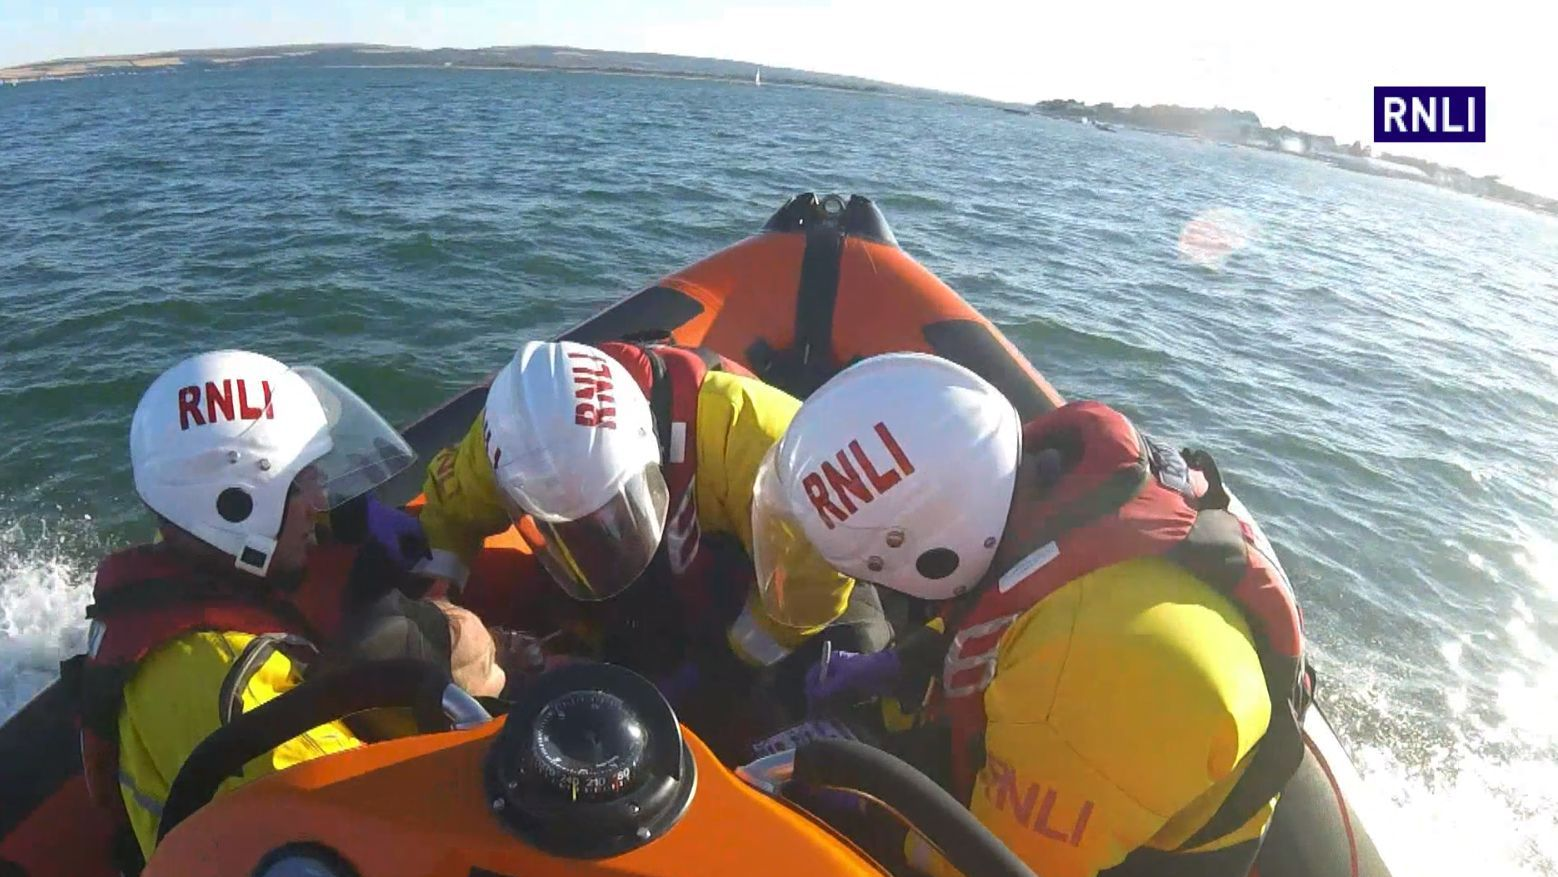 RNLI rescue elderly swimmer off Sanbanks Beach, picture courtesy of RNLI